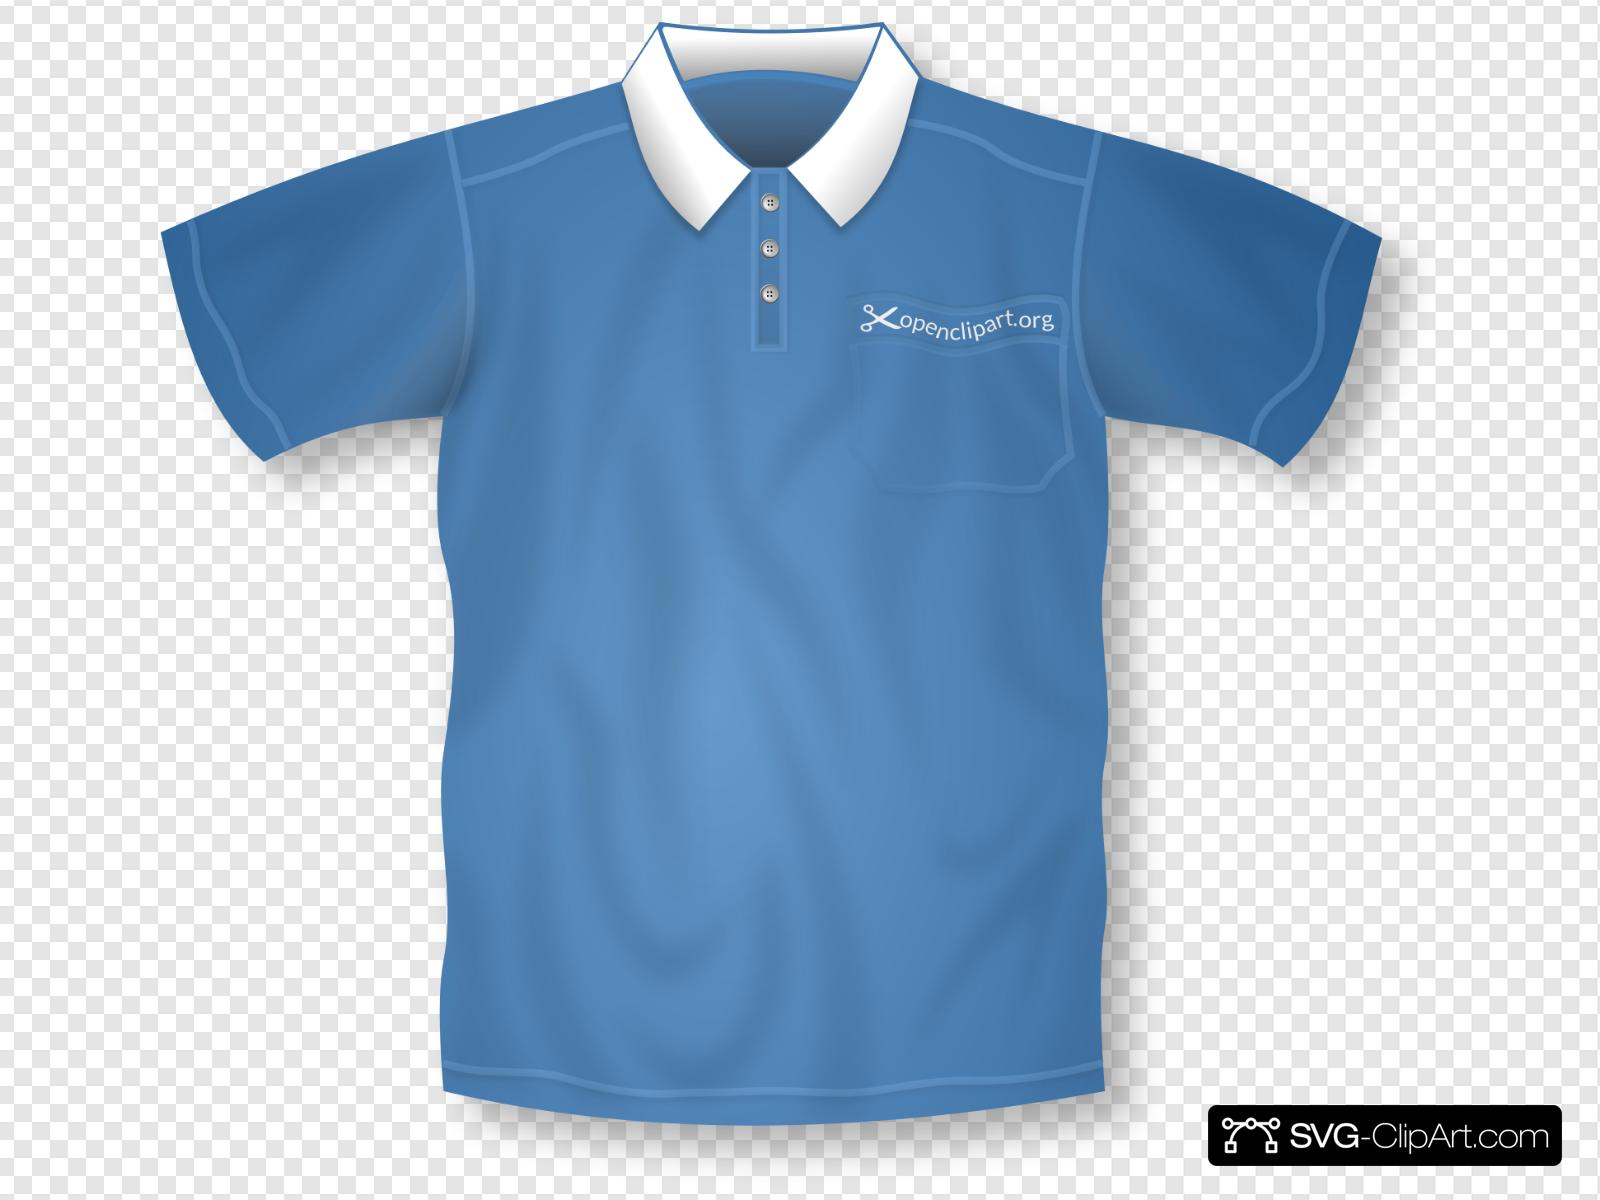 Blue Collared Short Sleeve Shirt Clip art, Icon and SVG.